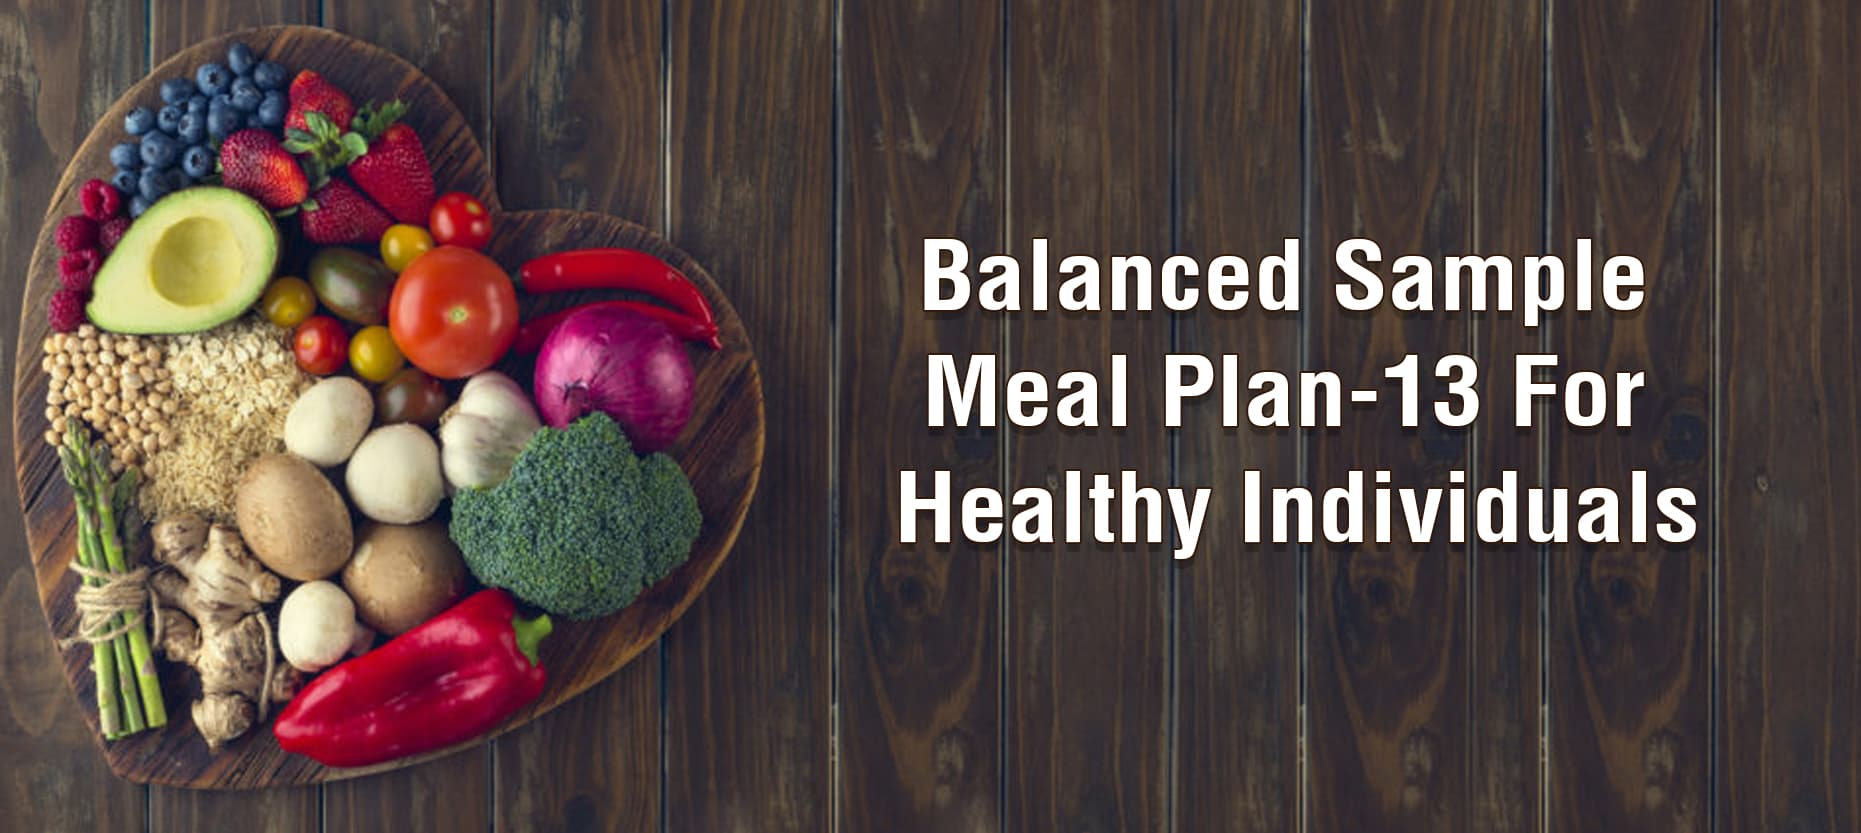 Balanced Sample Meal Plan-13 For Healthy Individuals